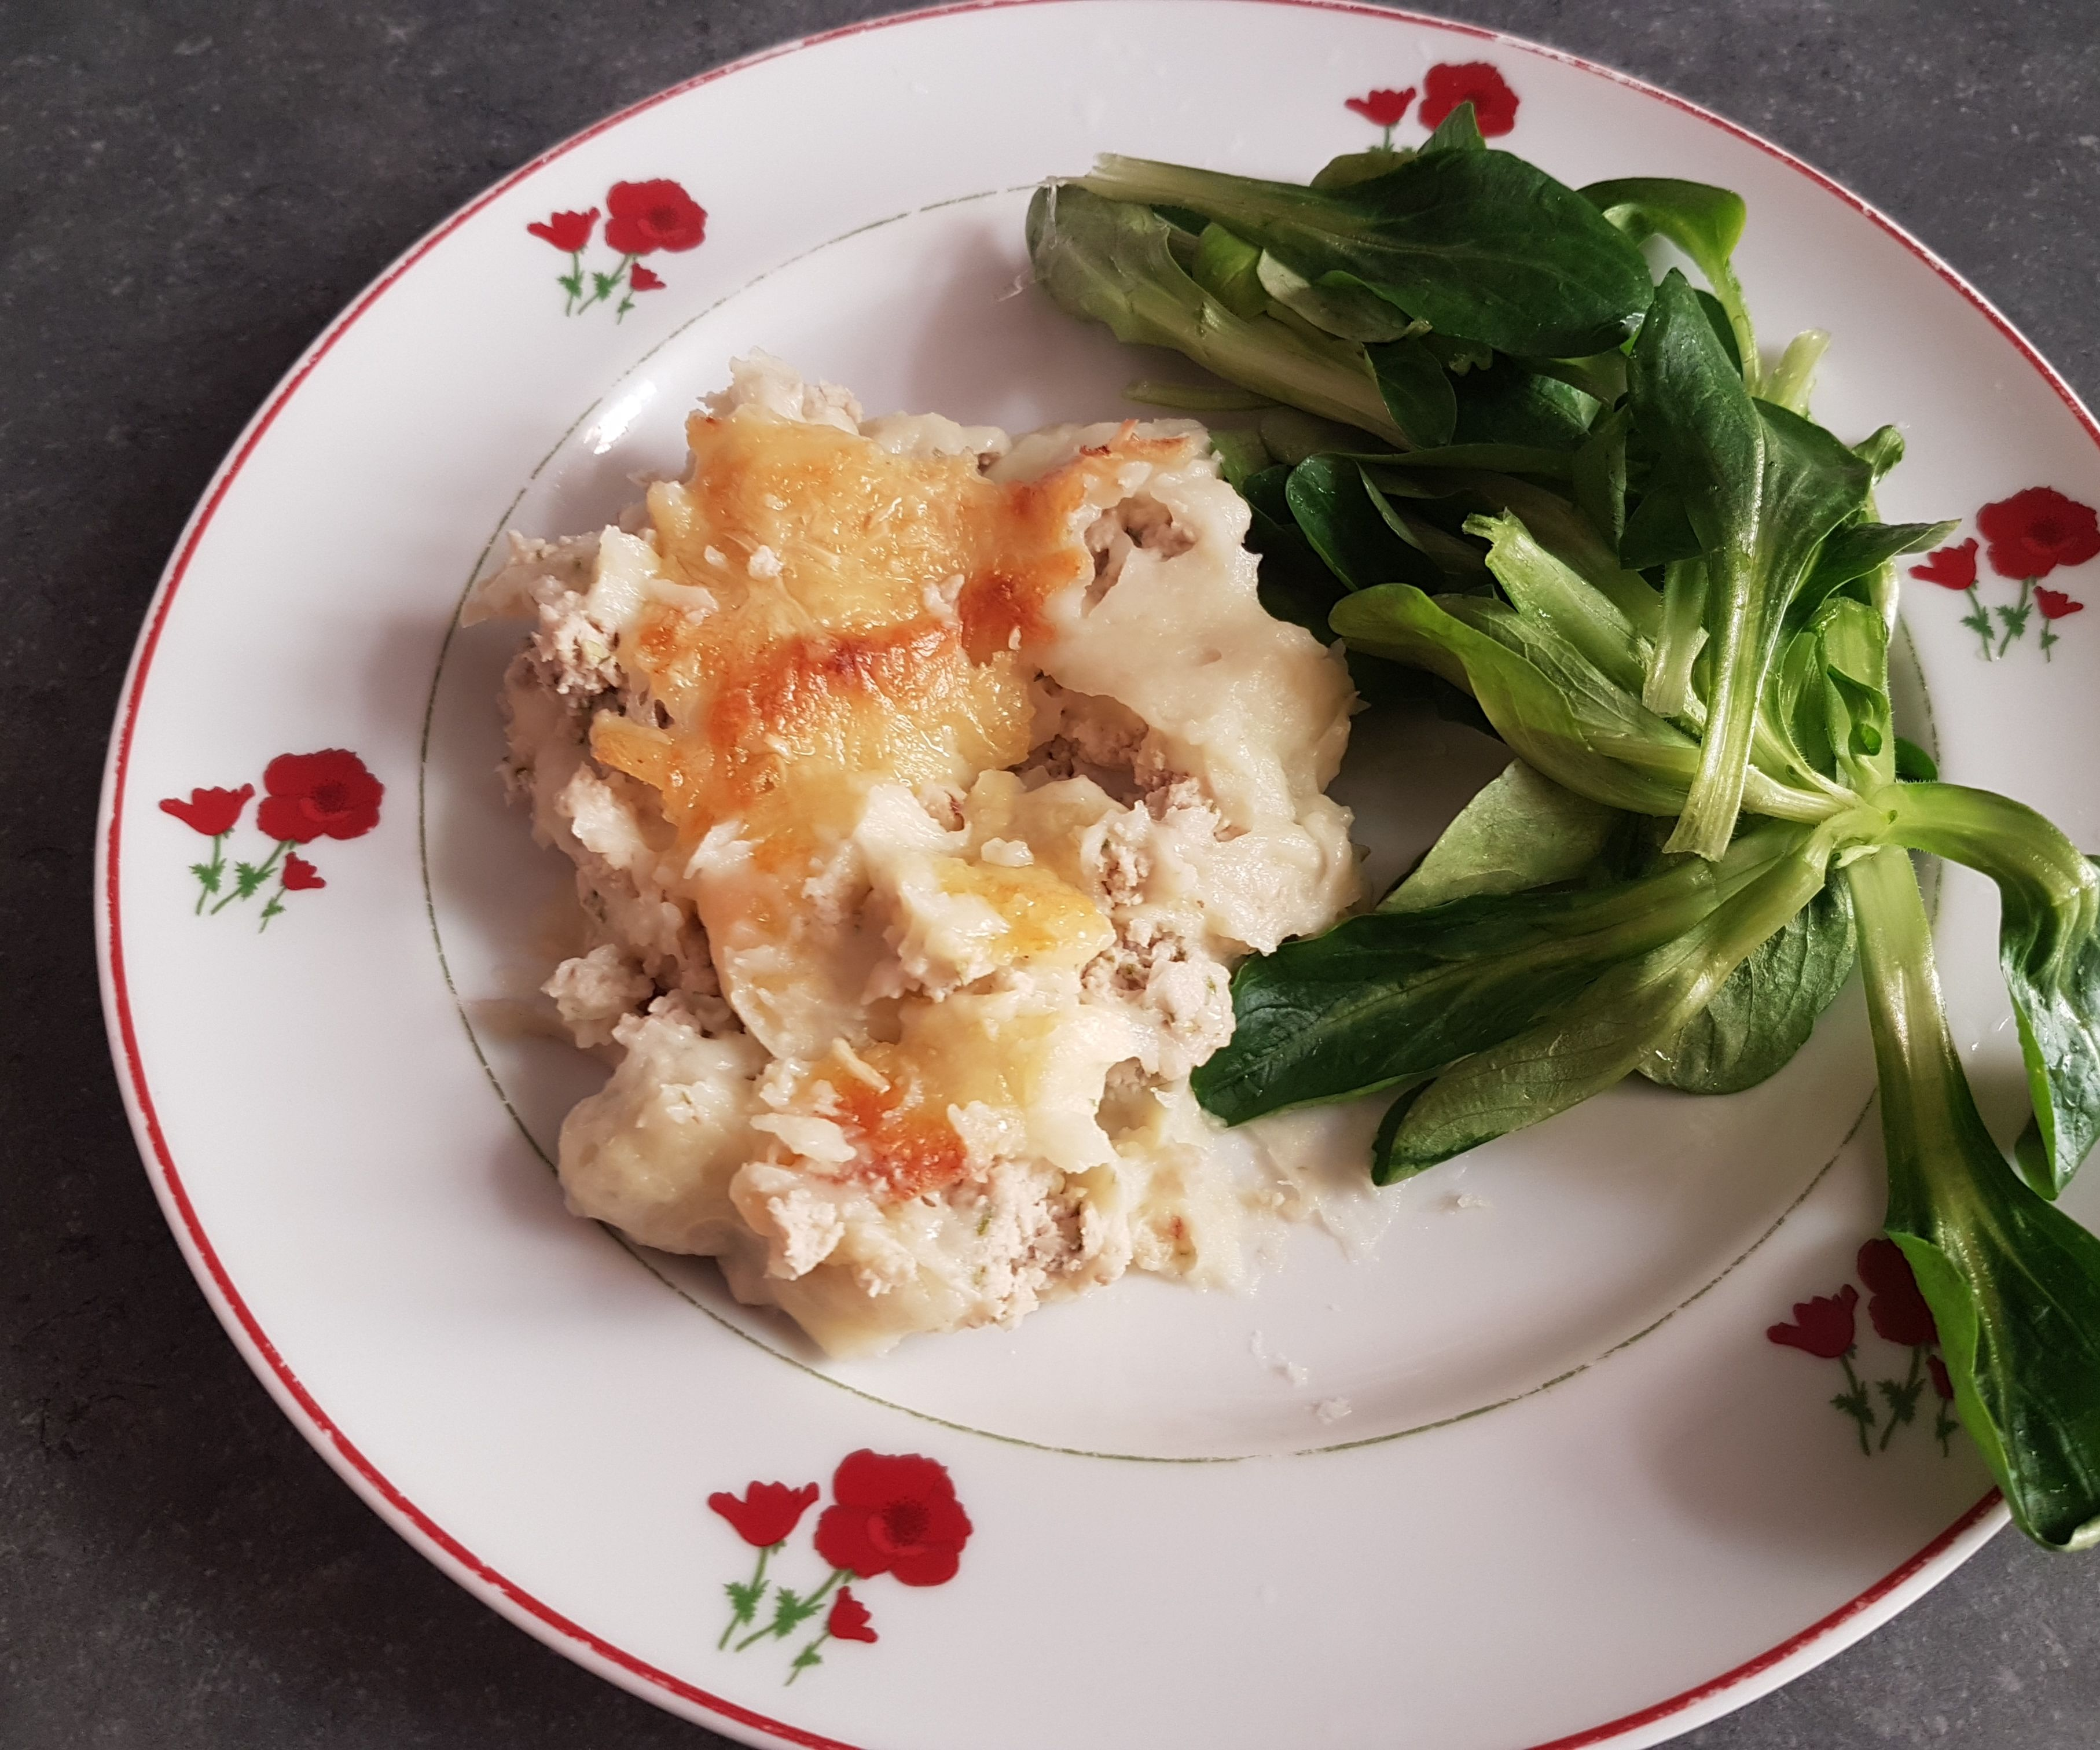 Upcycle Your Rest of Meals: the Real Recipe of the French Hachis Parmentier